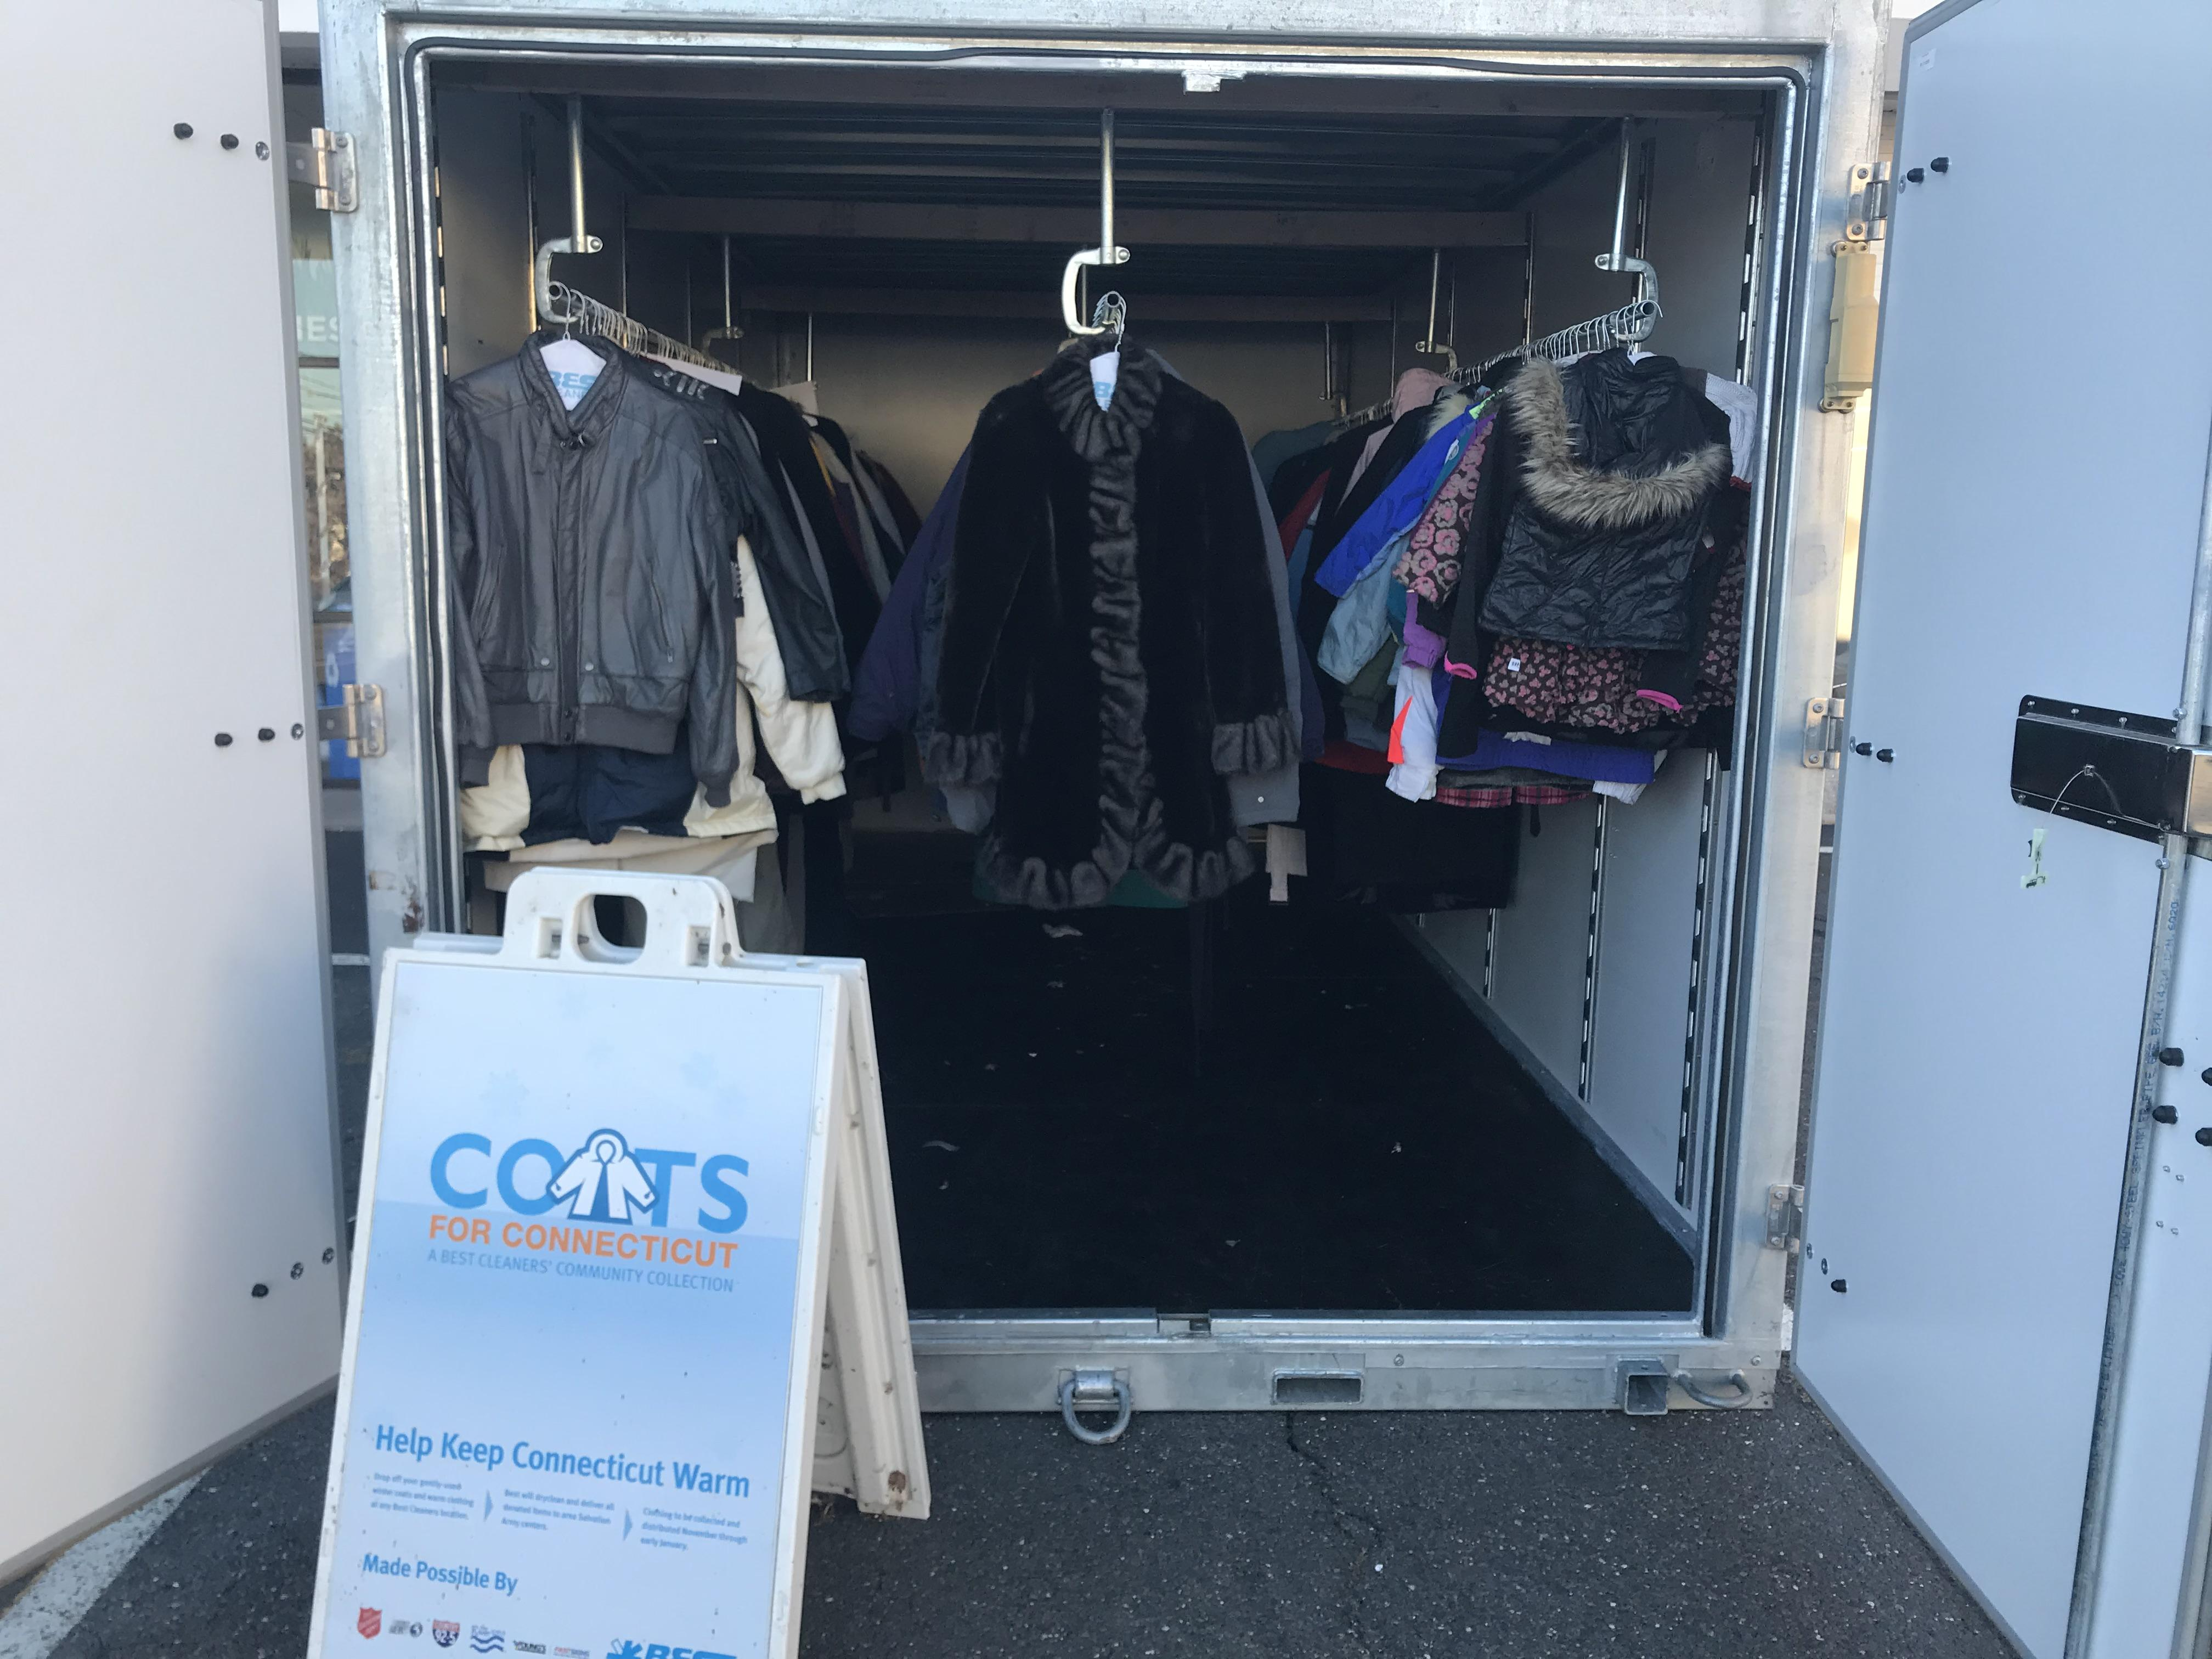 storage container being used for coats for Connecticut charity